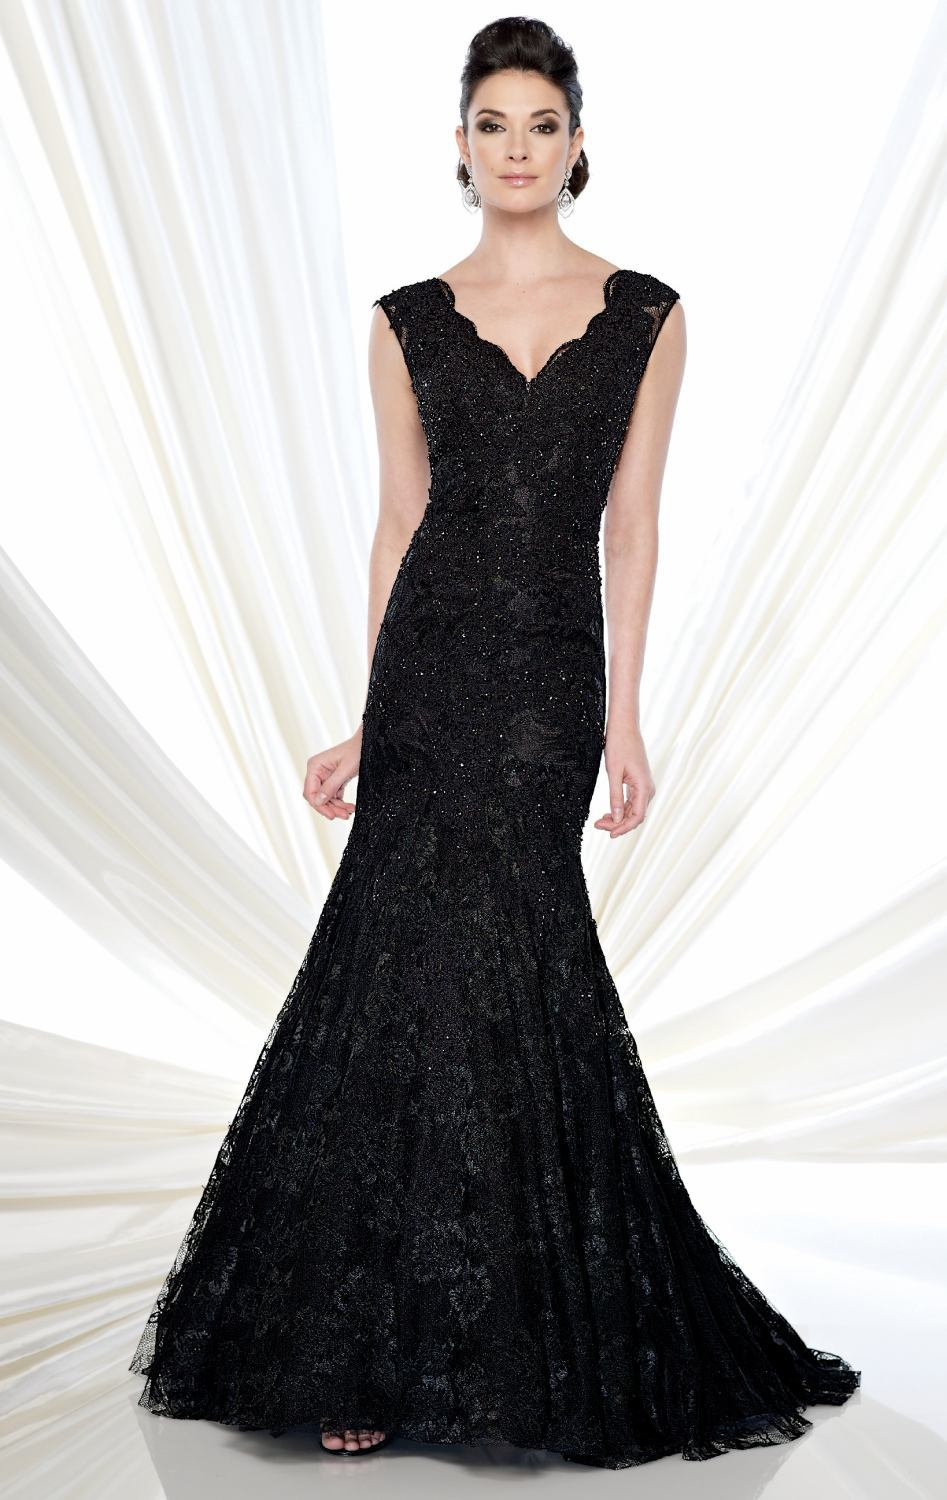 8e0ed153816 Get Quotations · Free Shipping Mermaid Prom Dresses Appliques Black plus  size mother of the bride lace dresses groom